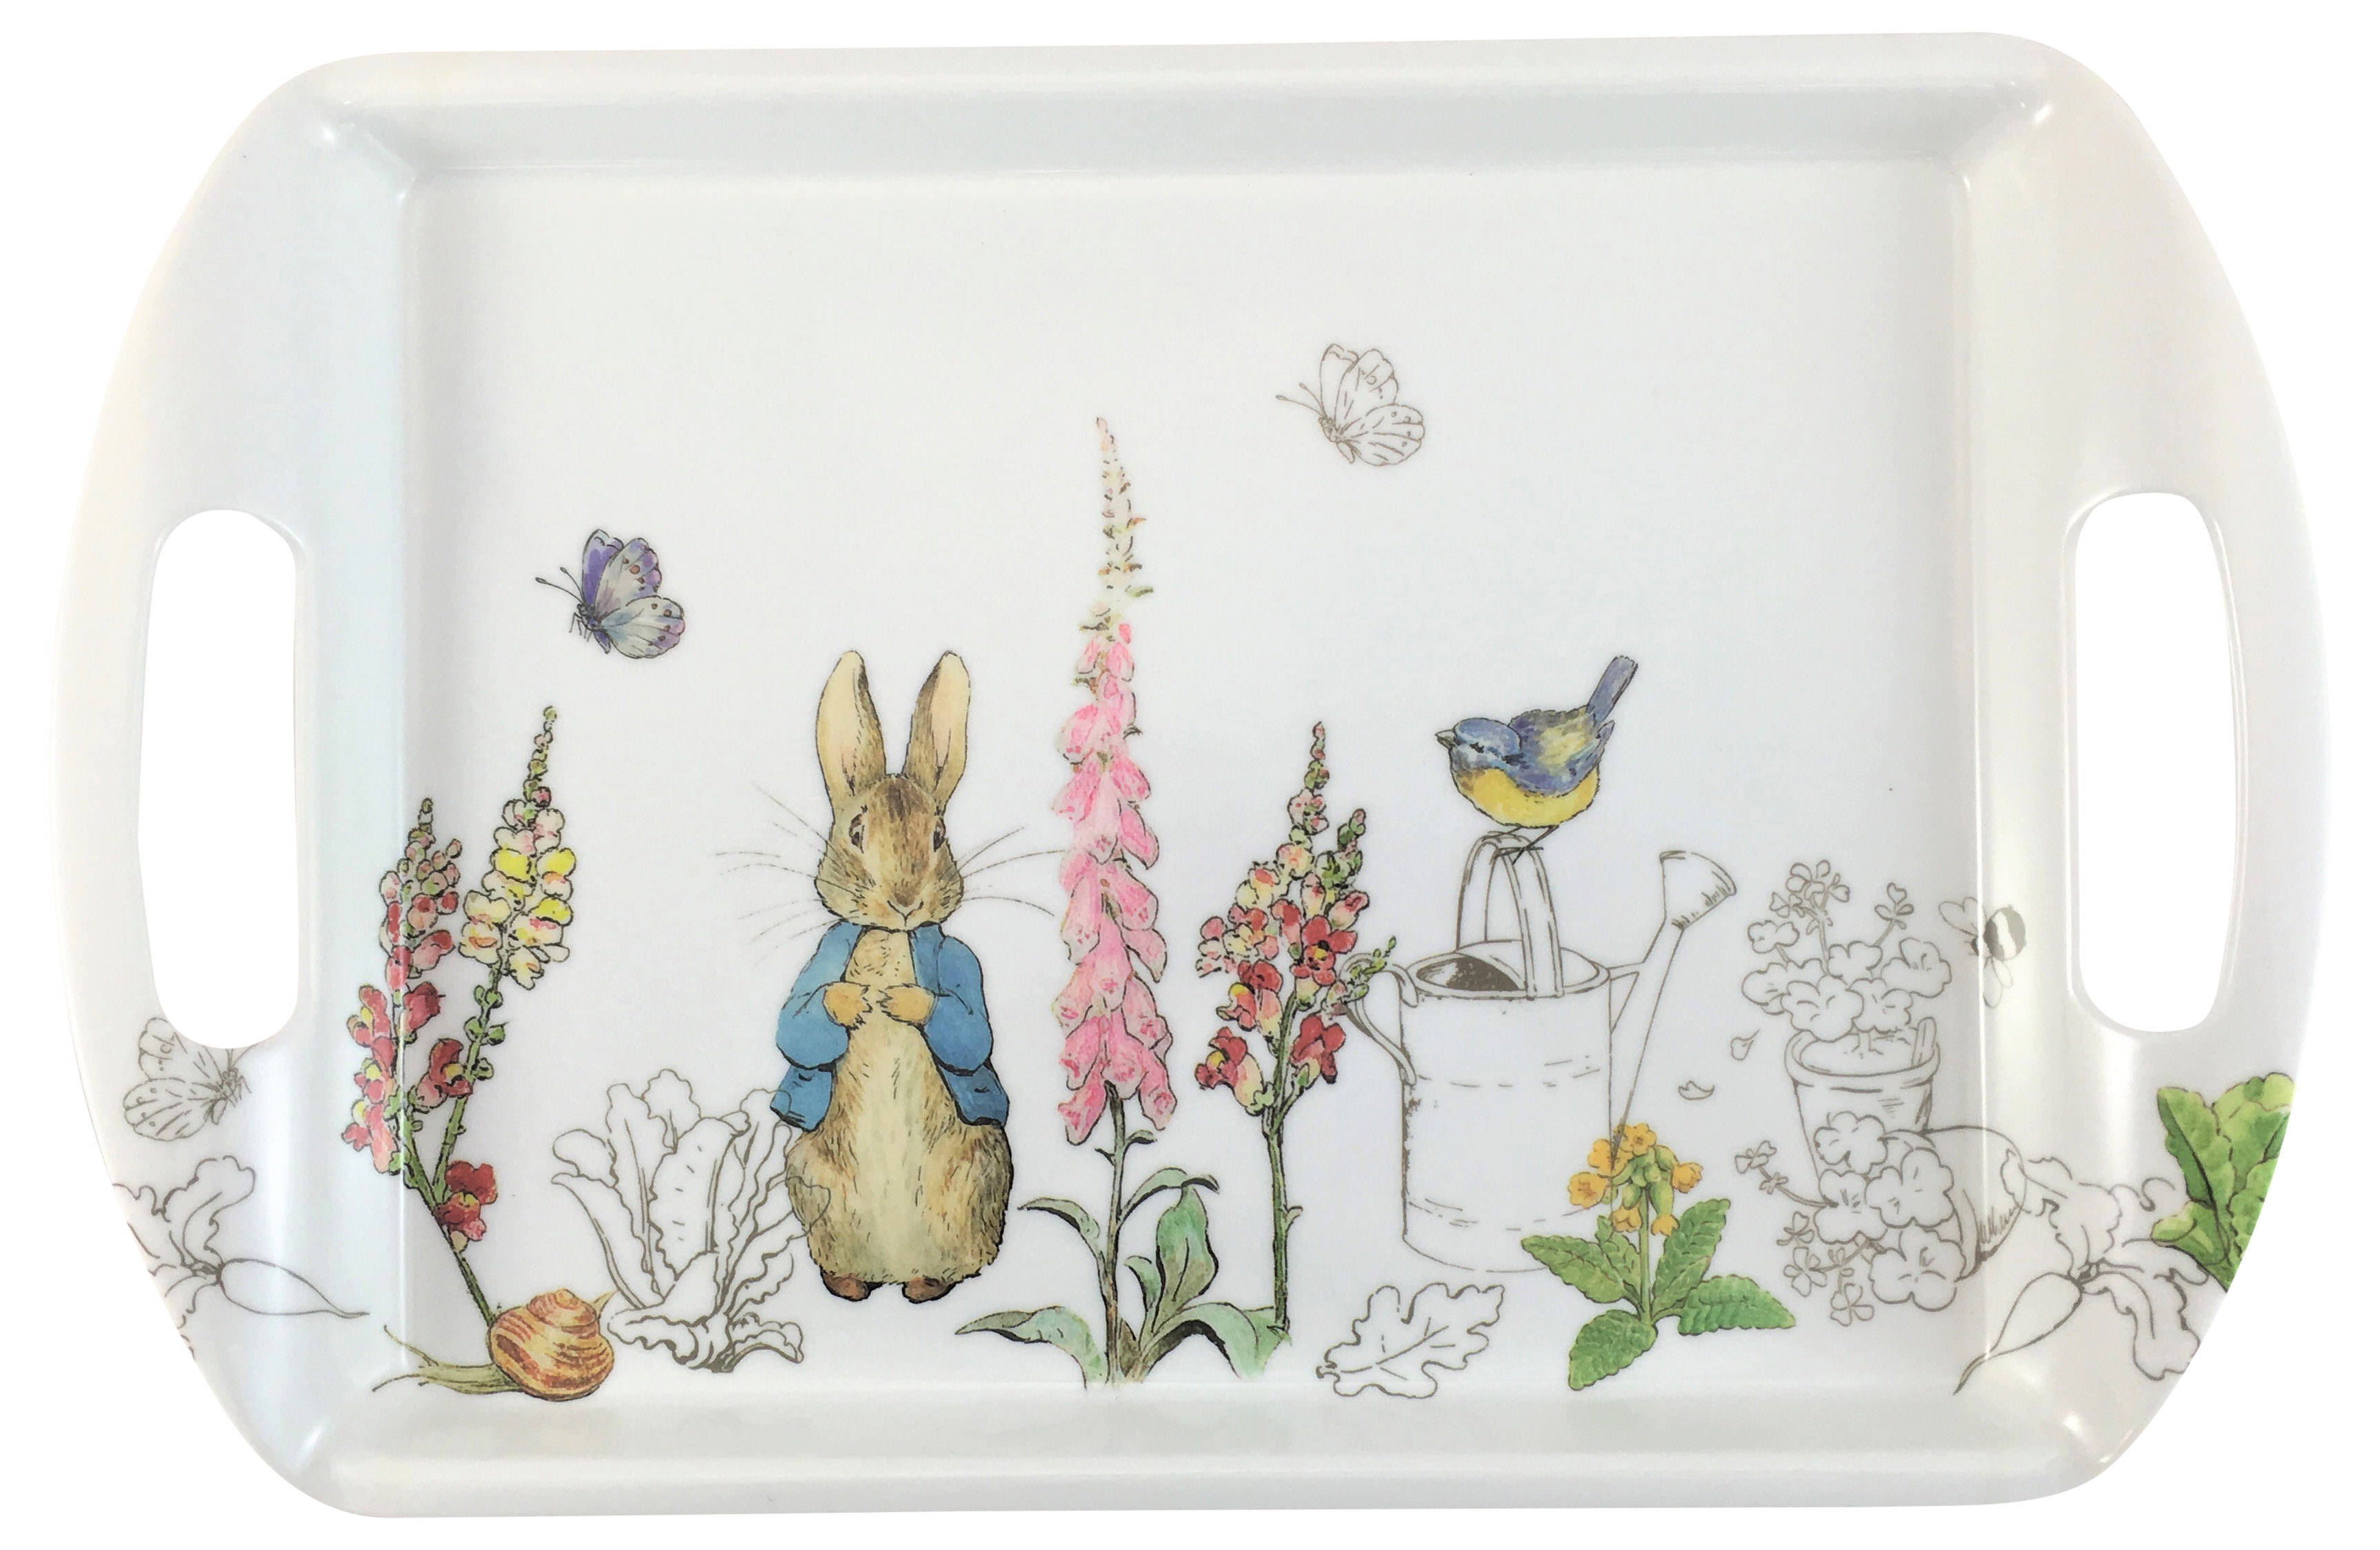 Peter Rabbit Melamine Tray (1)